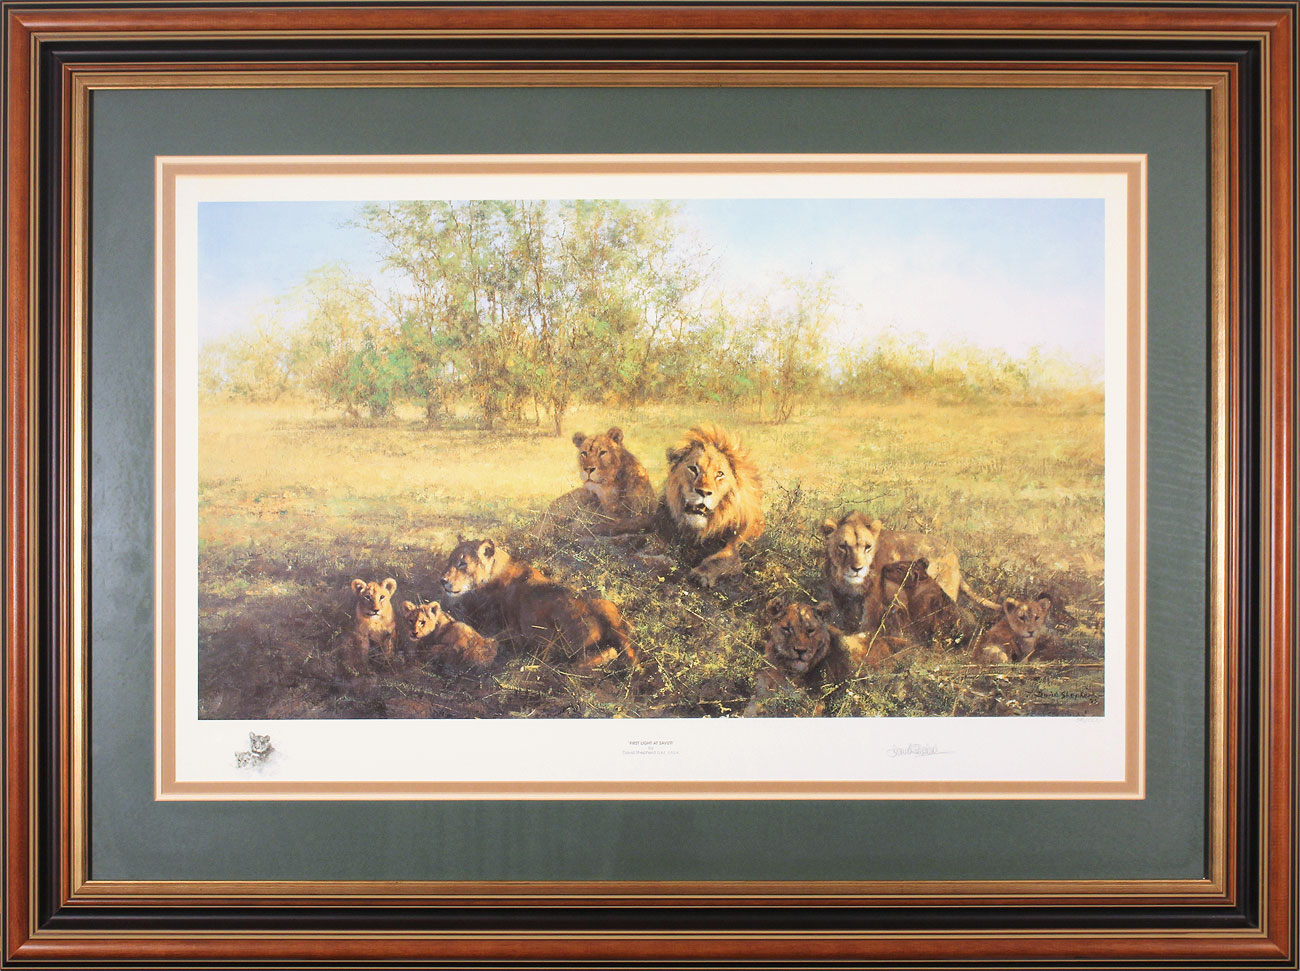 David Shepherd, Signed limited edition print, First Light at Savuti Click to enlarge